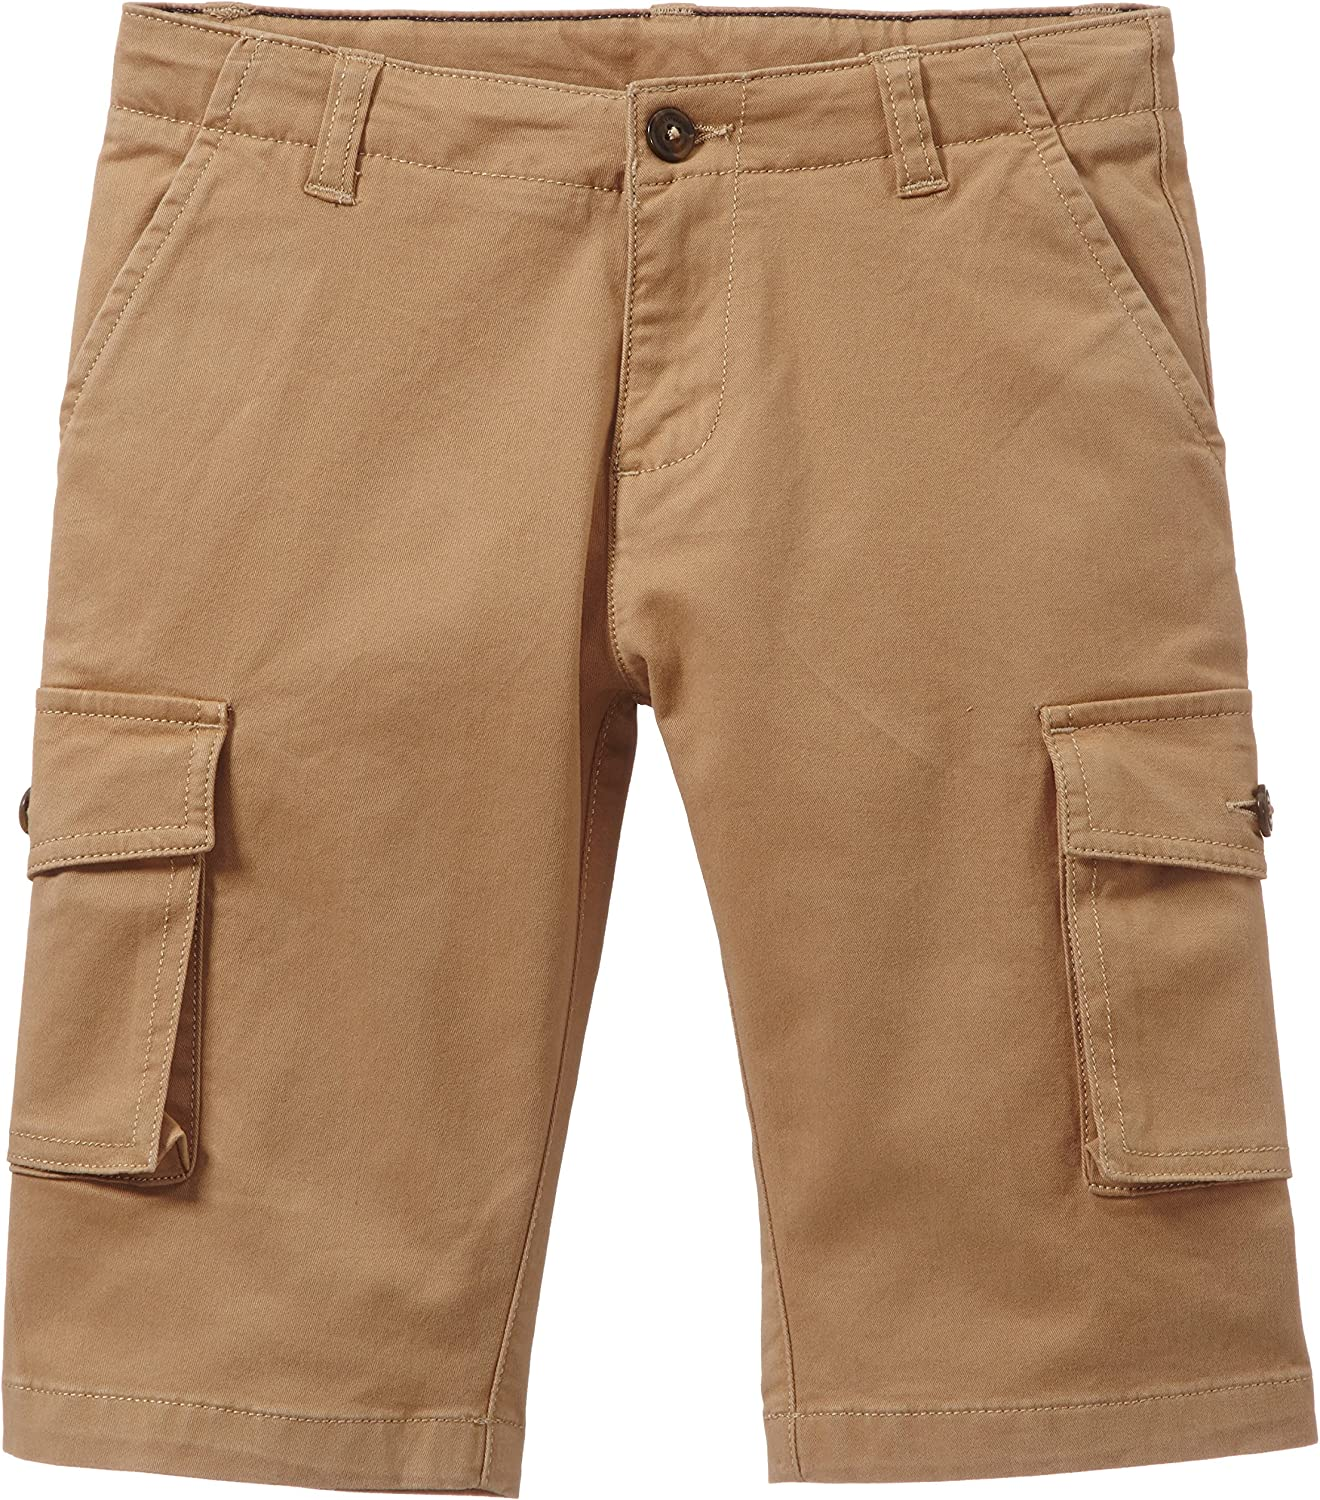 Petit Bateau Shorts with Side Pockets (Toddler Kids) - Brown-4 Years